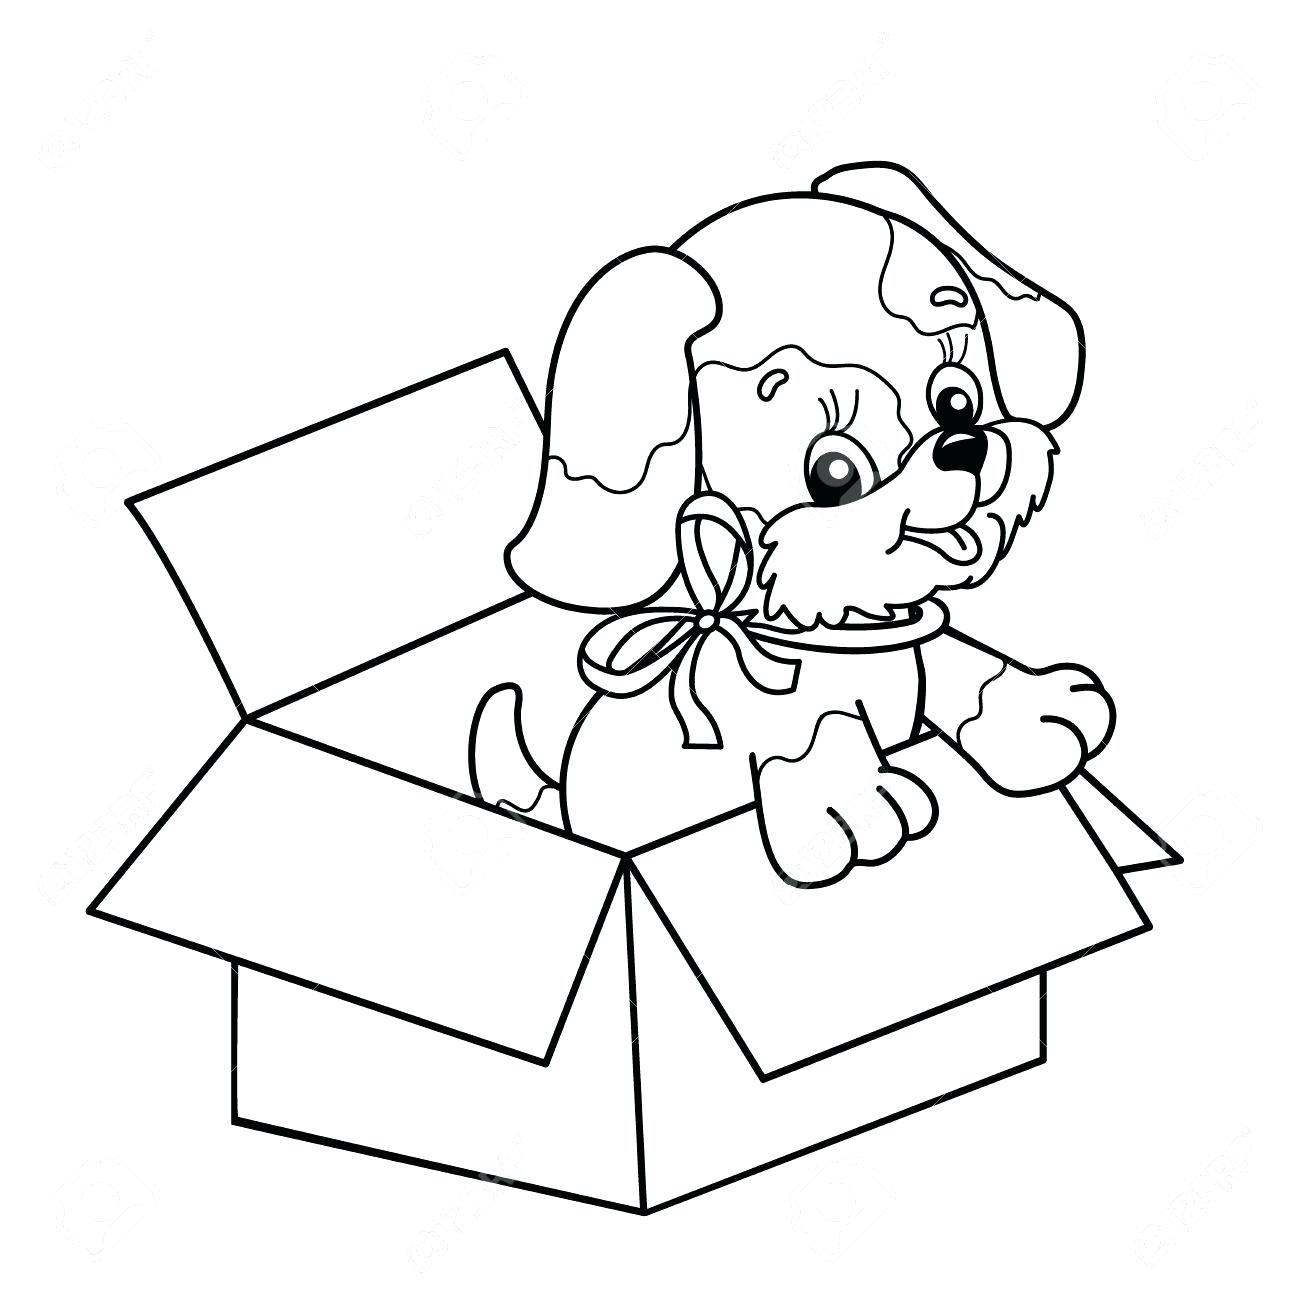 1300x1300 Unique Cartoon Puppy Coloring Pages Gallery Printable Coloring Sheet